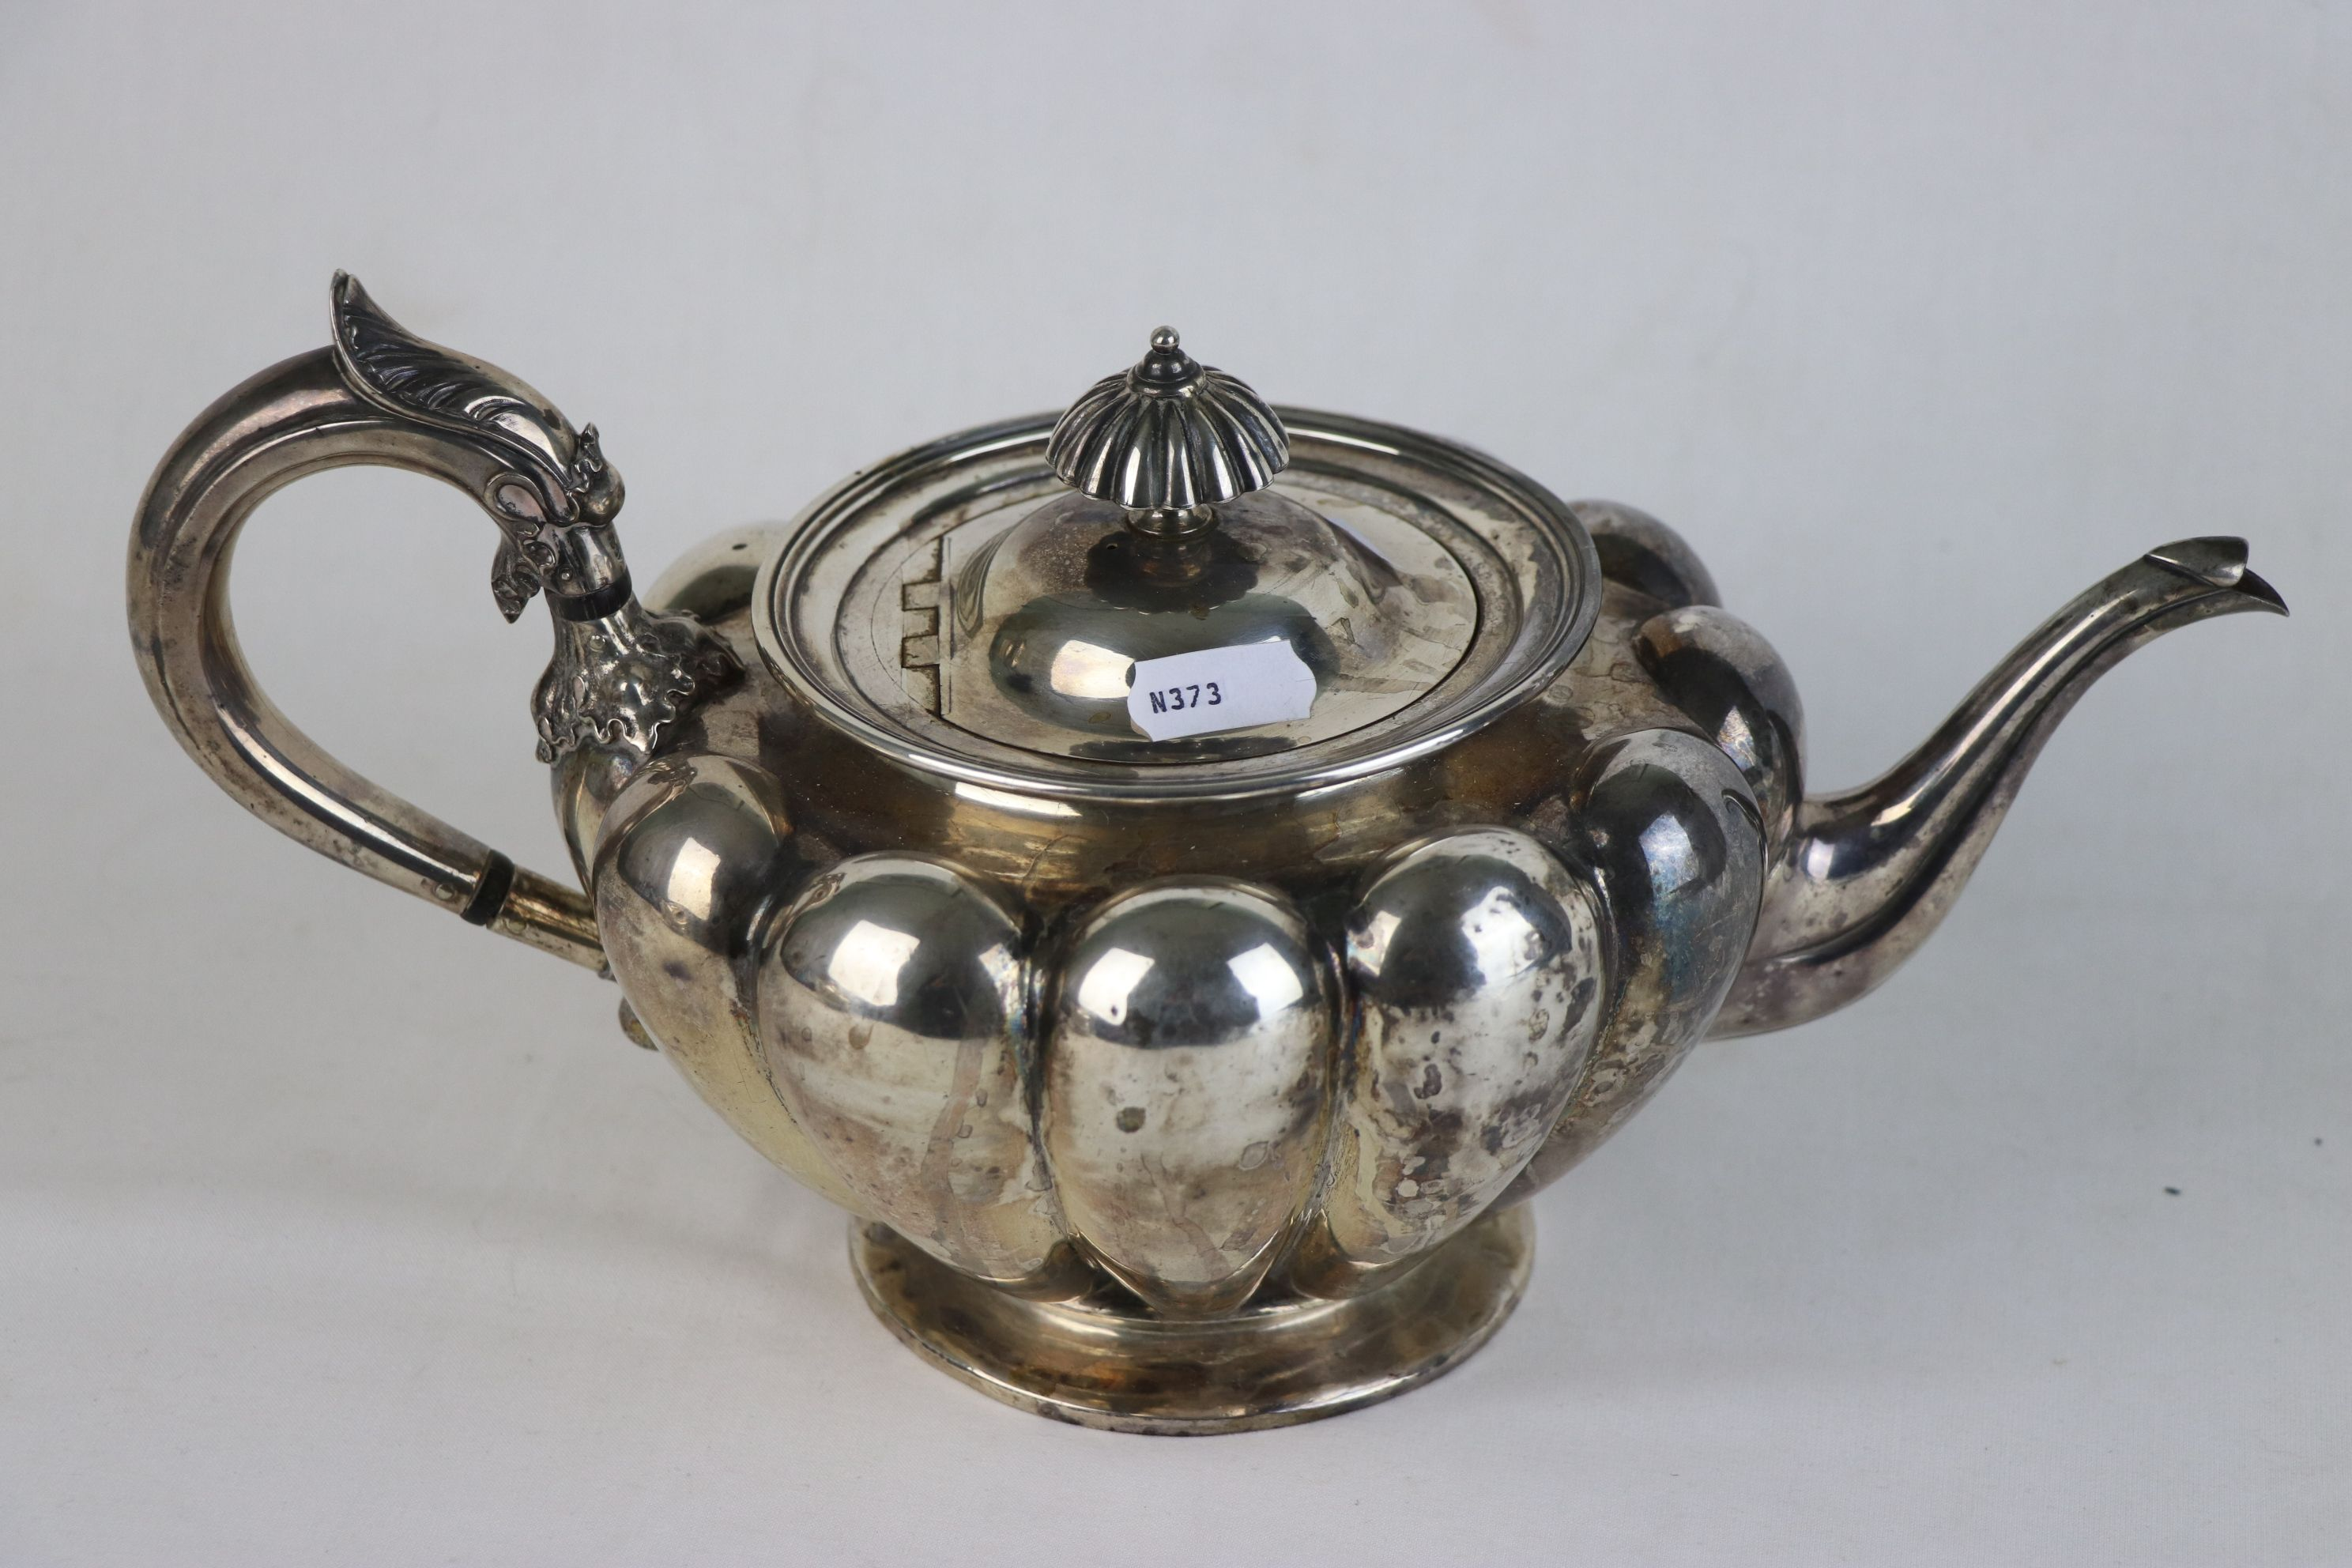 A fully hallmarked Victorian sterling silver Tea pot, maker marked for John Tapley, assayed in - Image 2 of 8